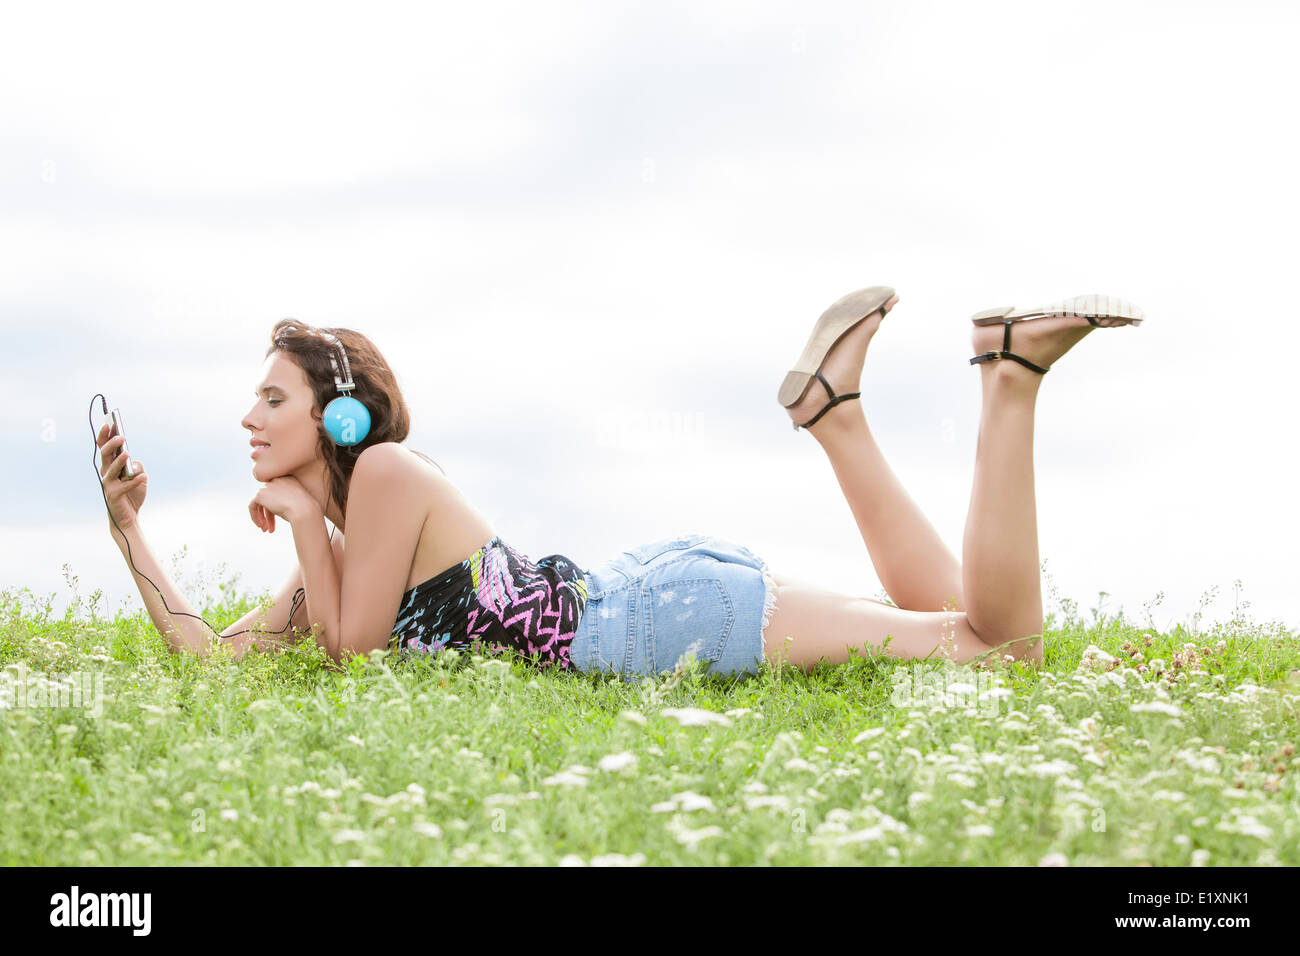 Profile shot of woman listening to music through cell phone using headphones while lying on grass against sky - Stock Image